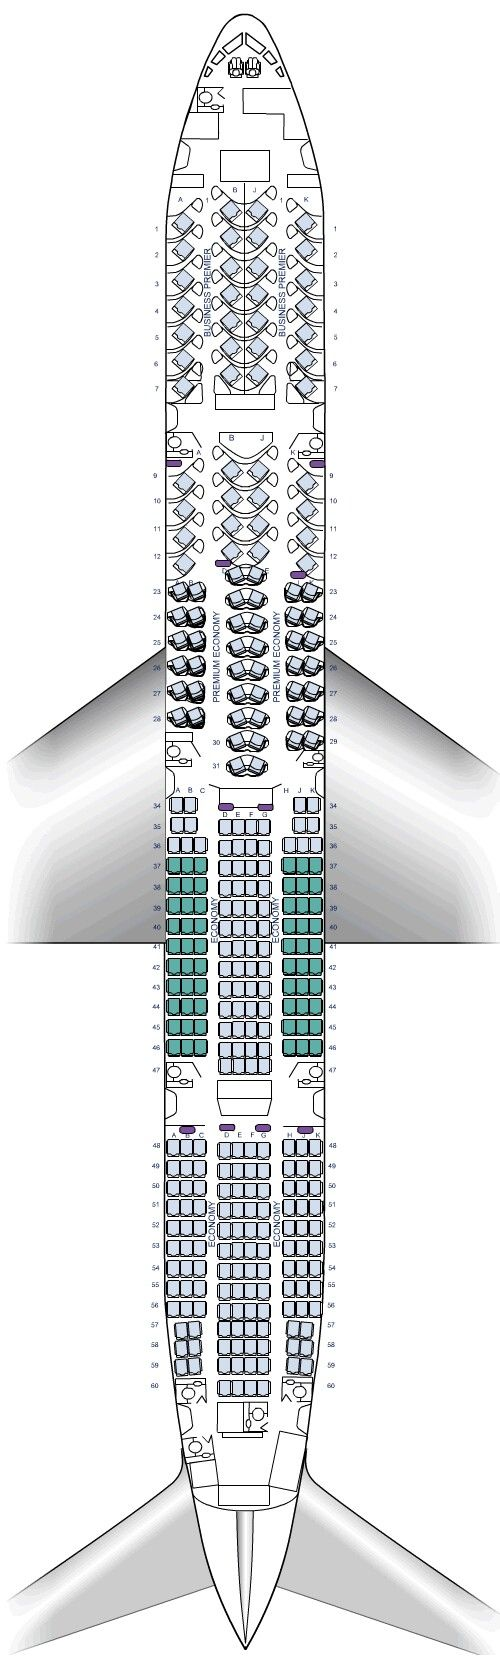 Boeing 777-300er (Air New Zealand seating layout.)